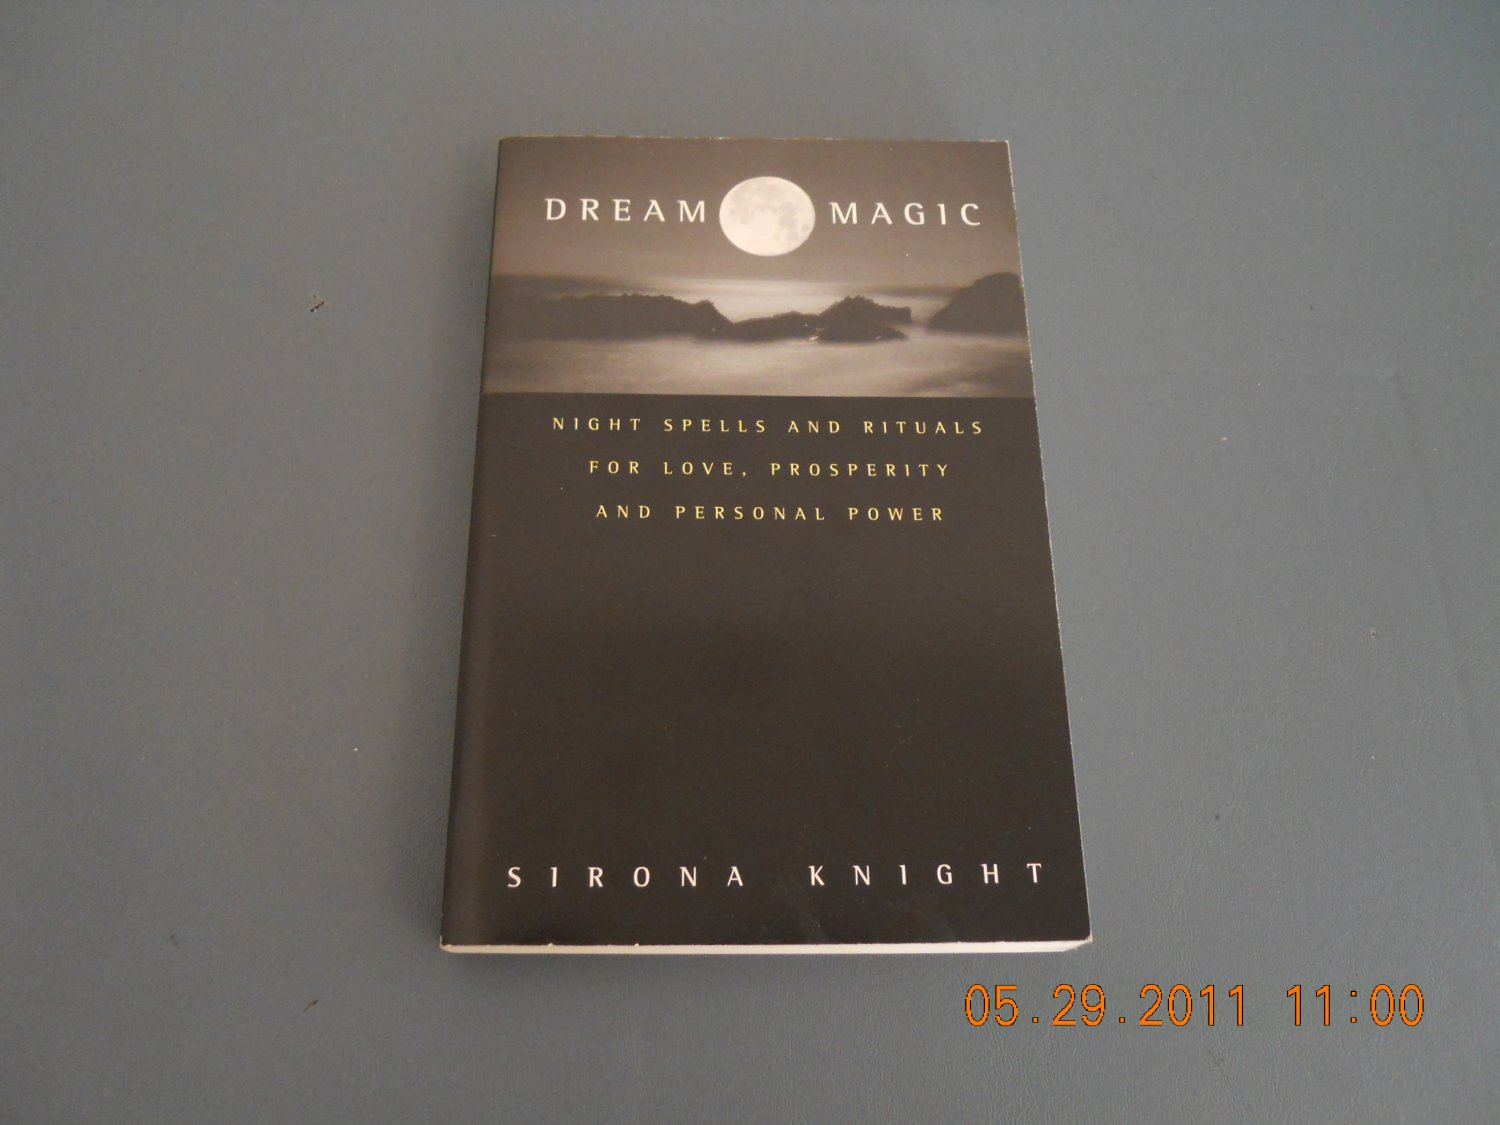 Dream Magic Night Spells and Rituals for Love, Prosperity and Personal Power paperback